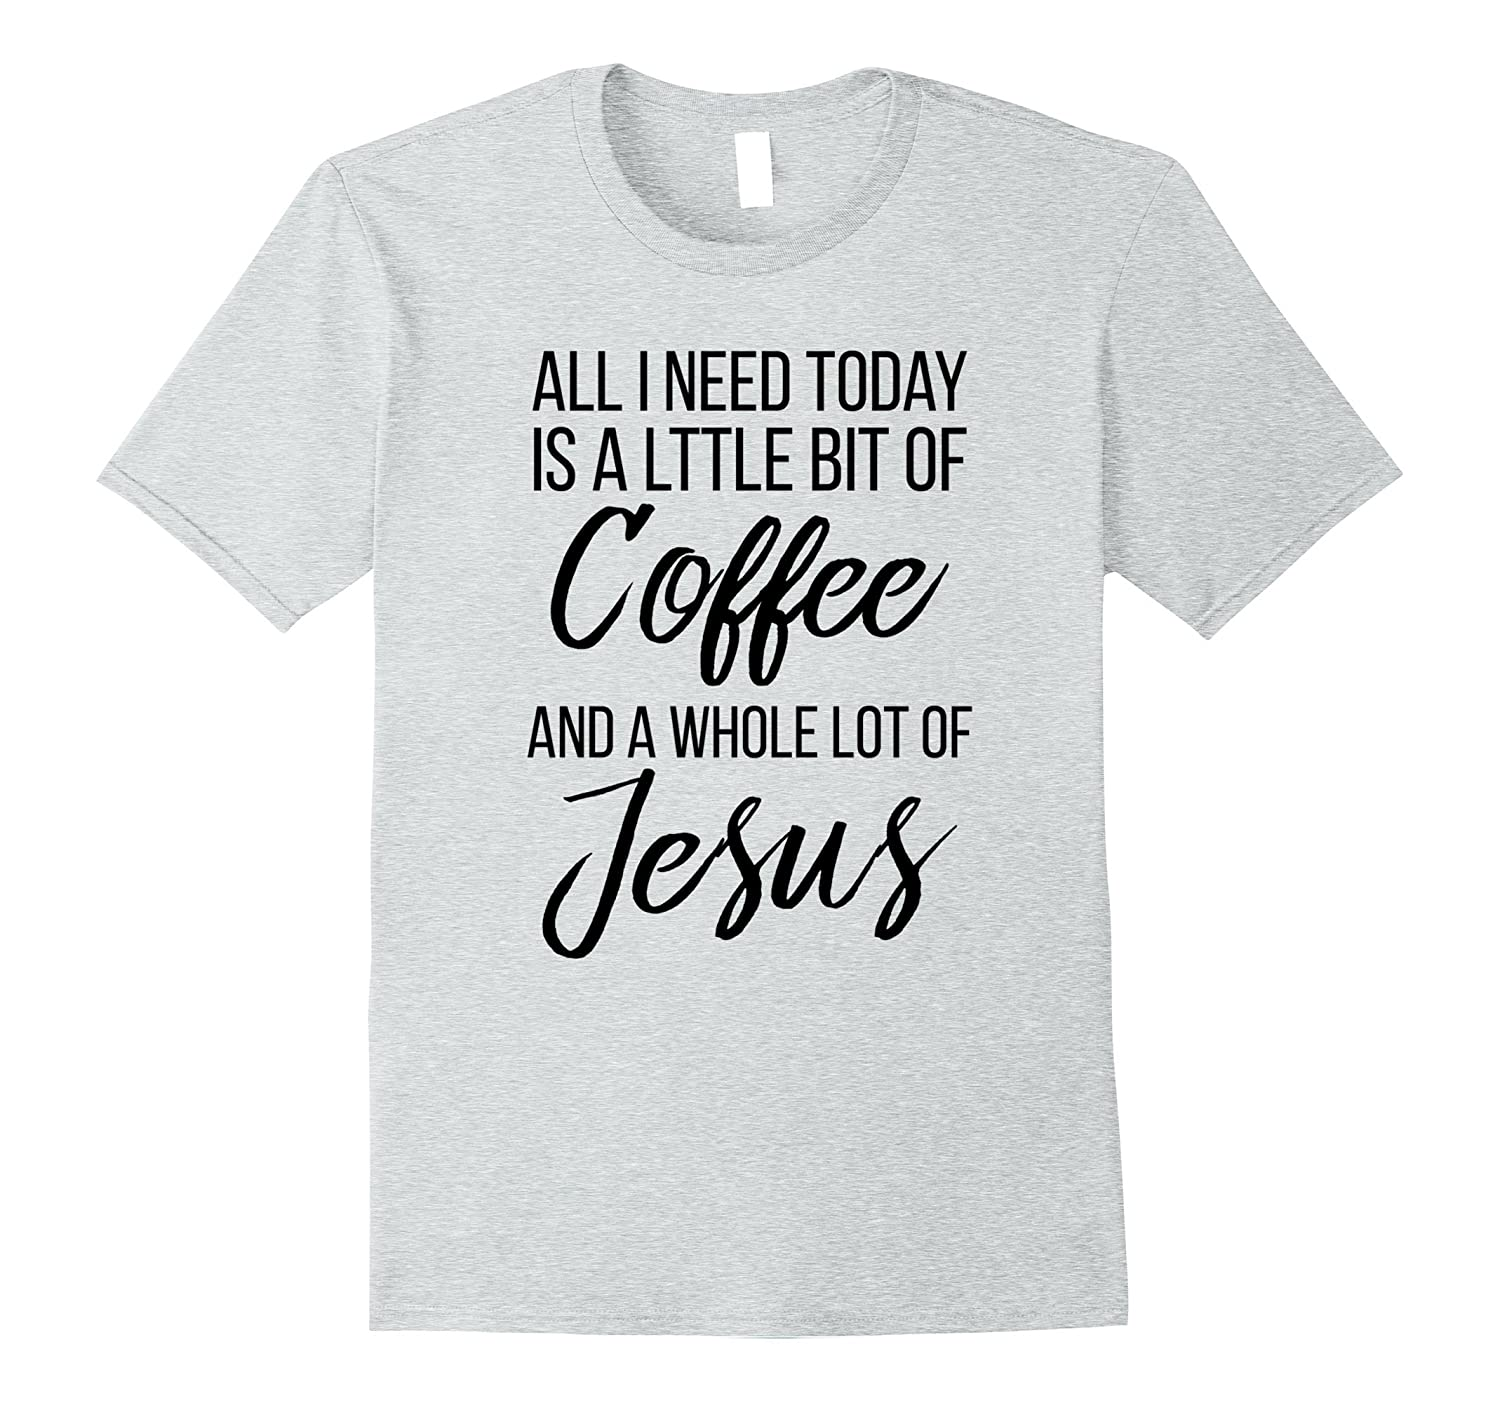 c5914050c All I Need Today Is Coffee And Jesus T-Shirt-PL – Polozatee